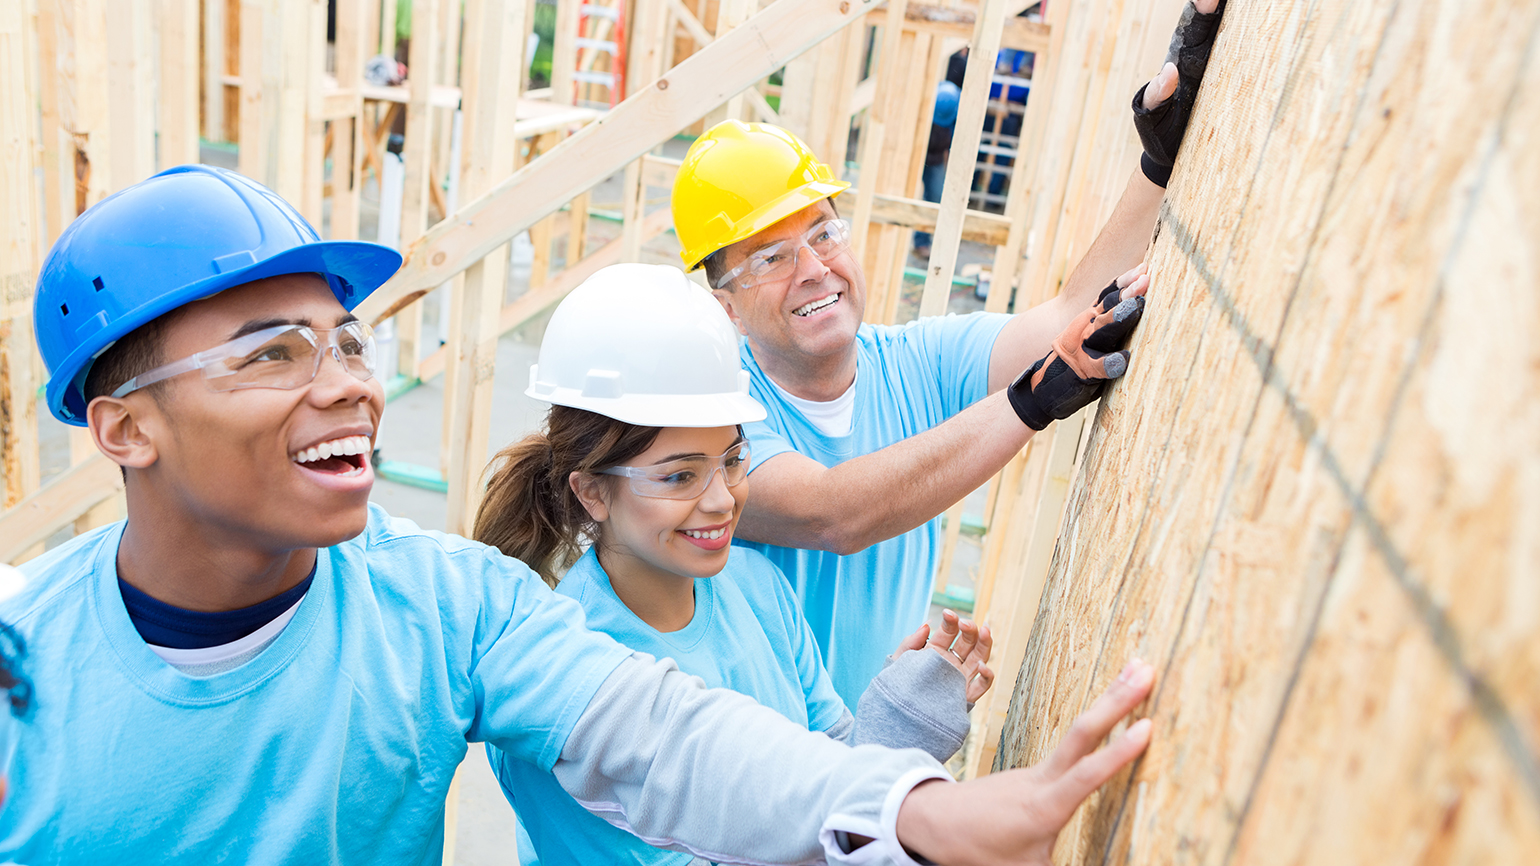 Volunteers erect a house for charity